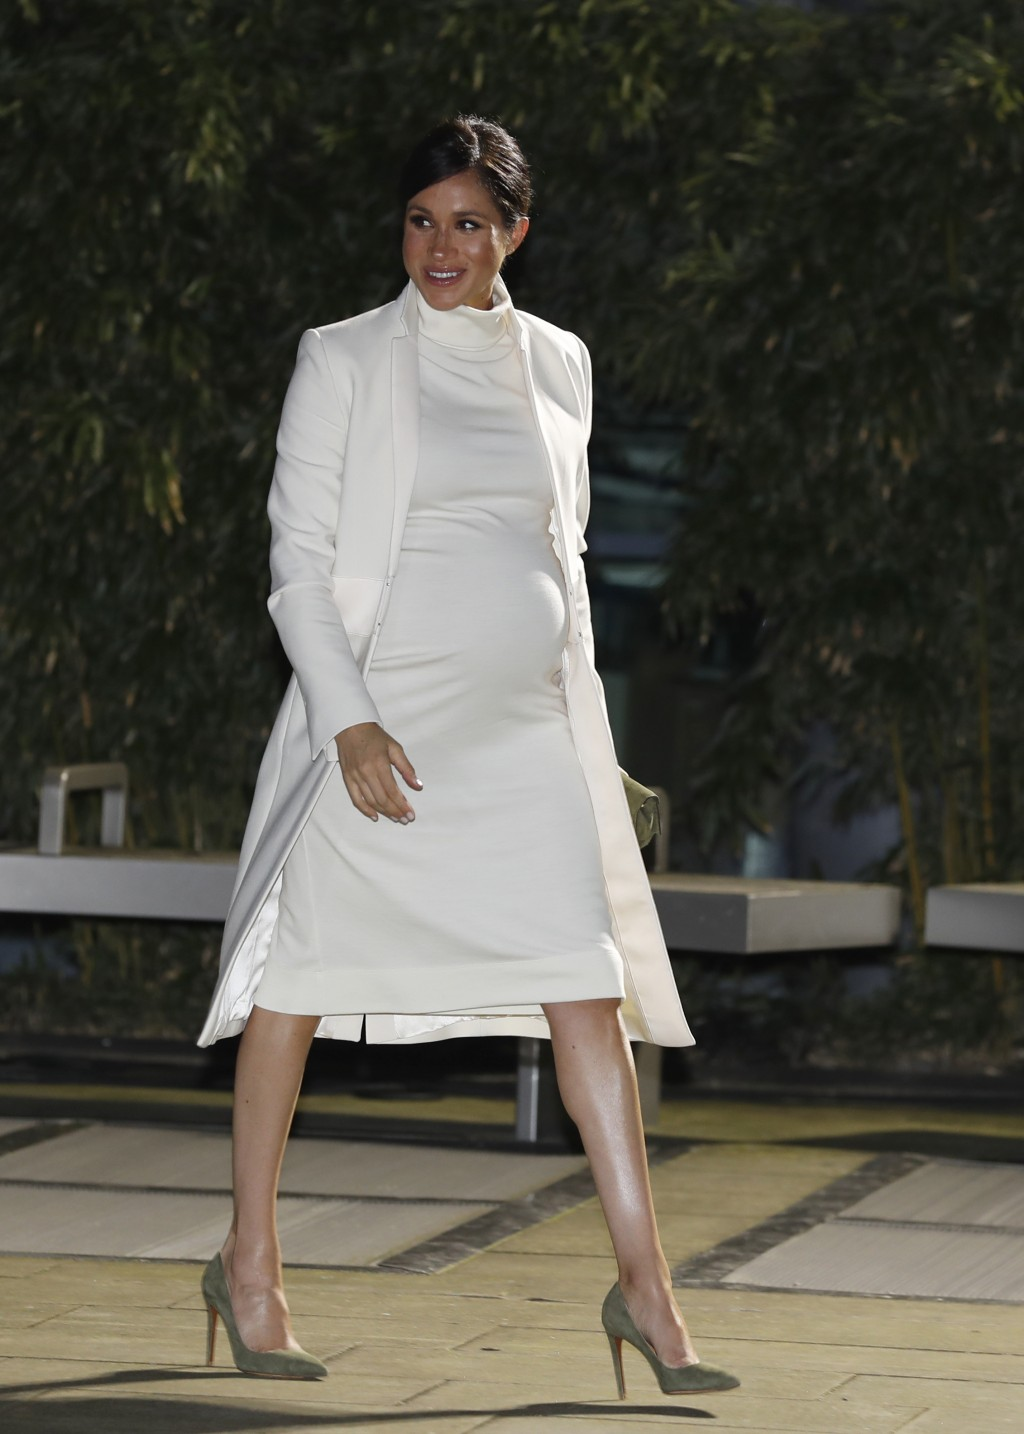 FILE - In this Tuesday, Feb. 12, 2019 file photo, Meghan, Duchess of Sussex arrives for a charity event at the Natural History museum in London. Nine ...